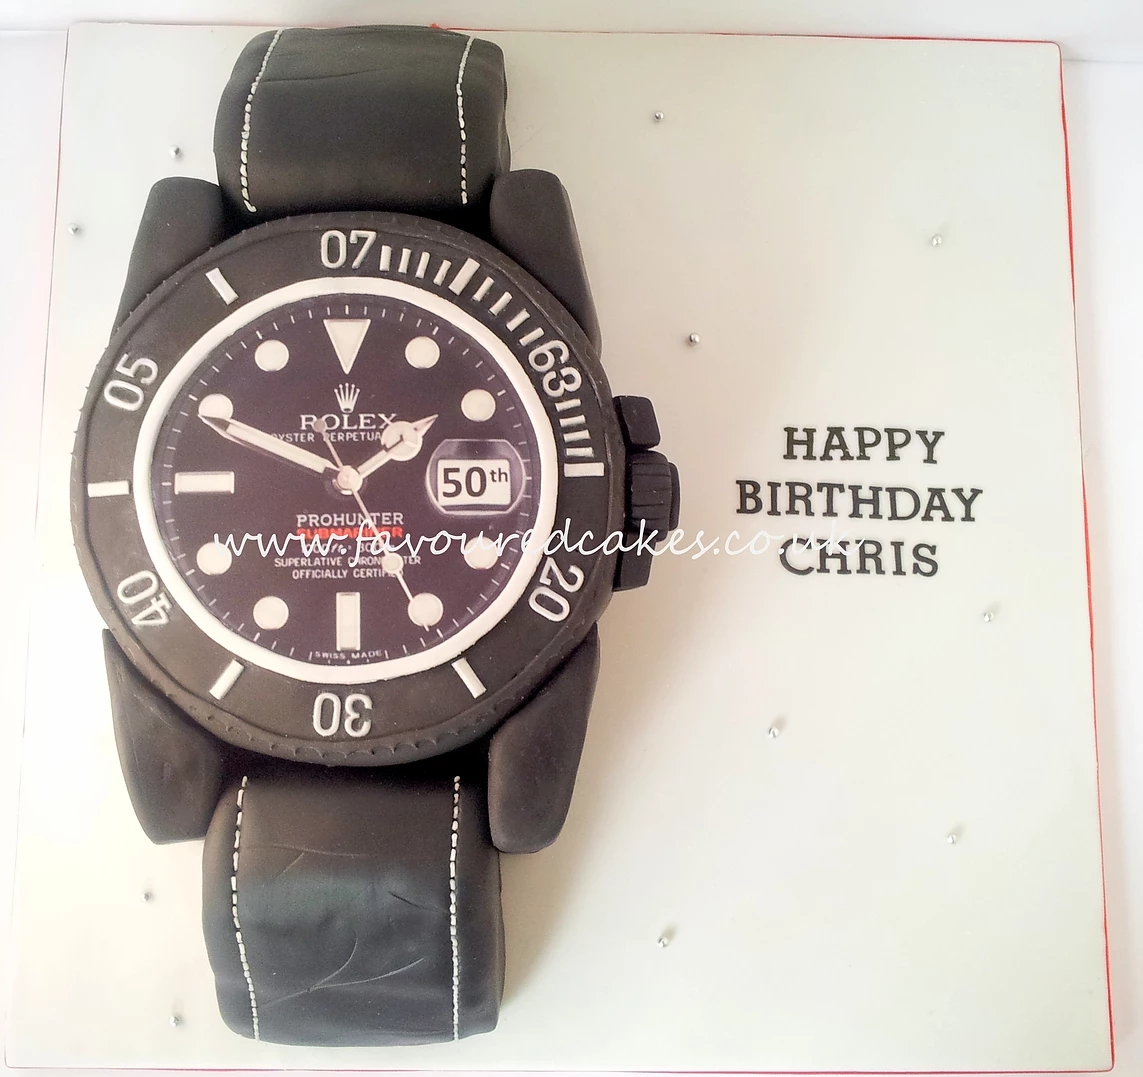 Rolex Watch Cake WC02